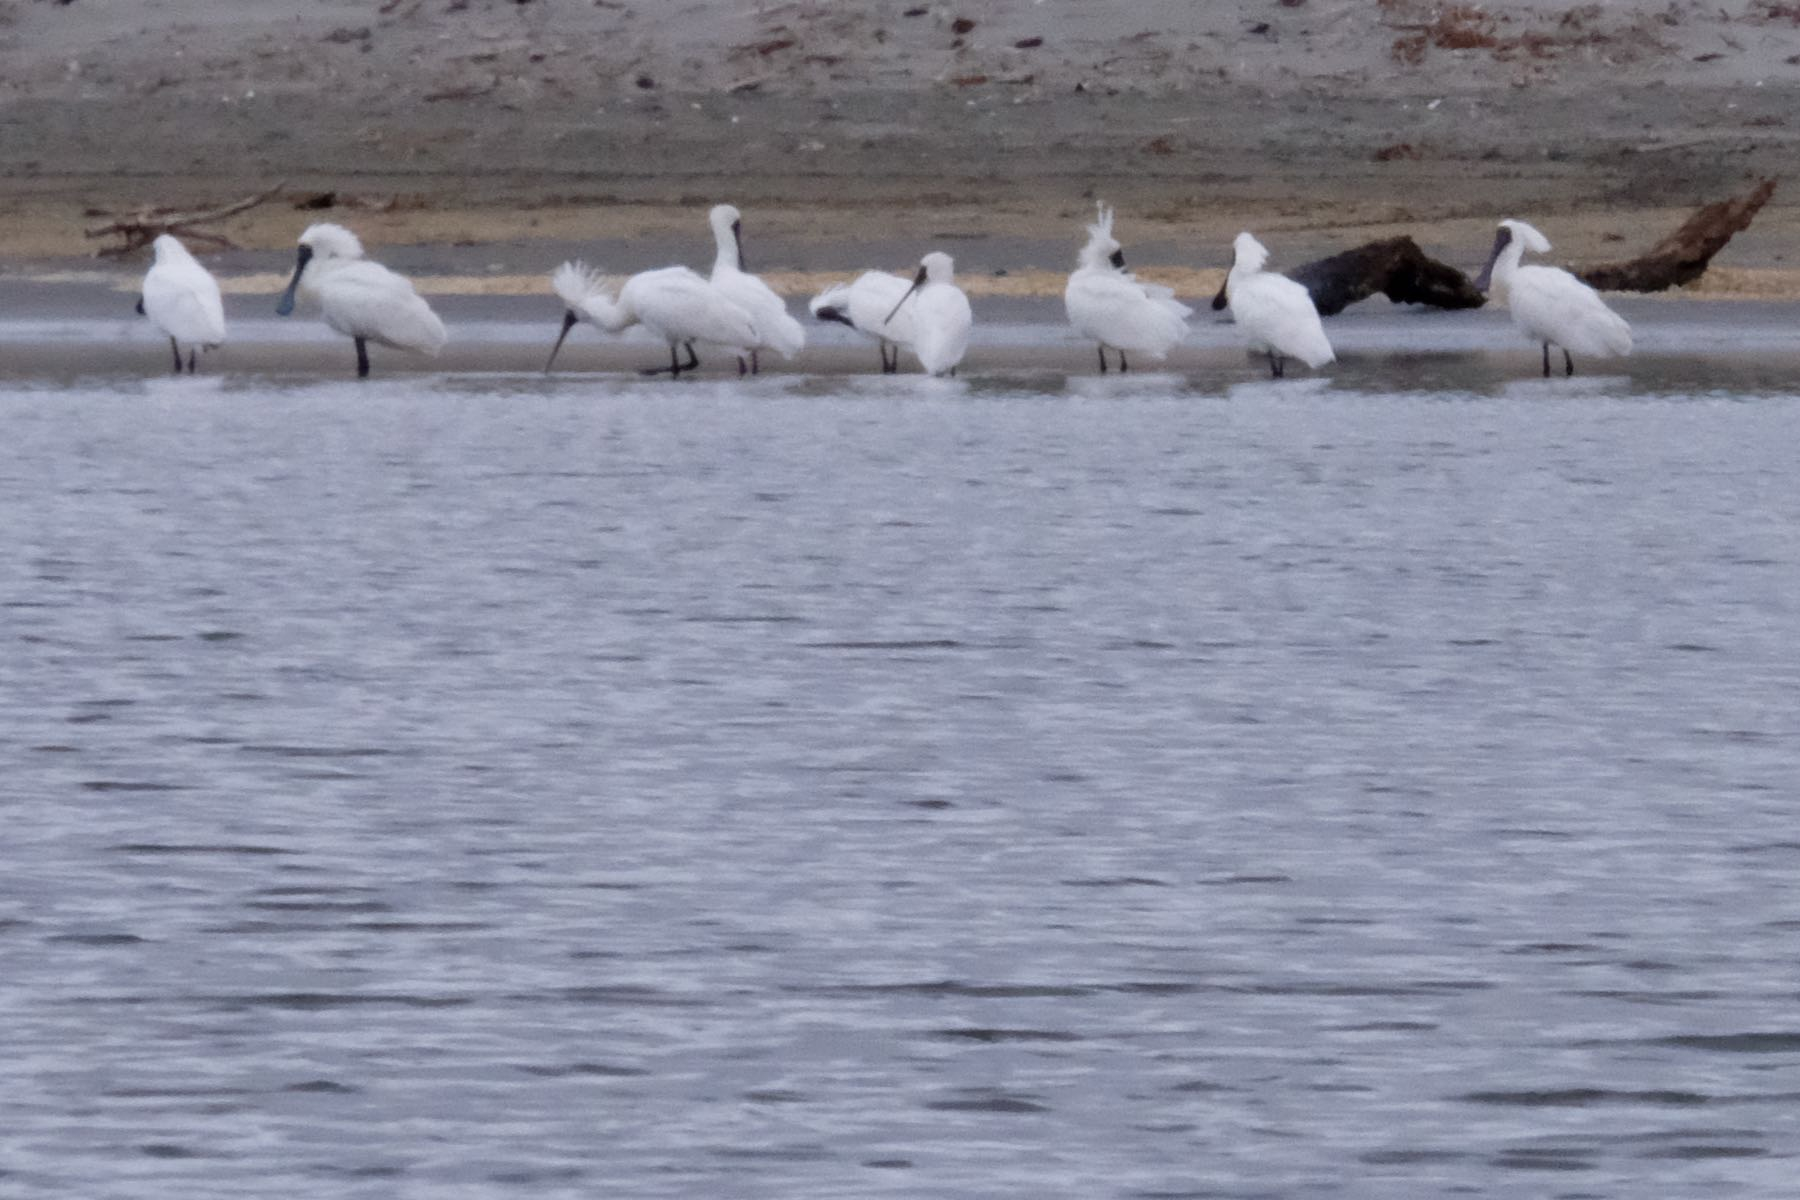 9 large white birds in shallow estuary water.  Zoomed in a bit more.